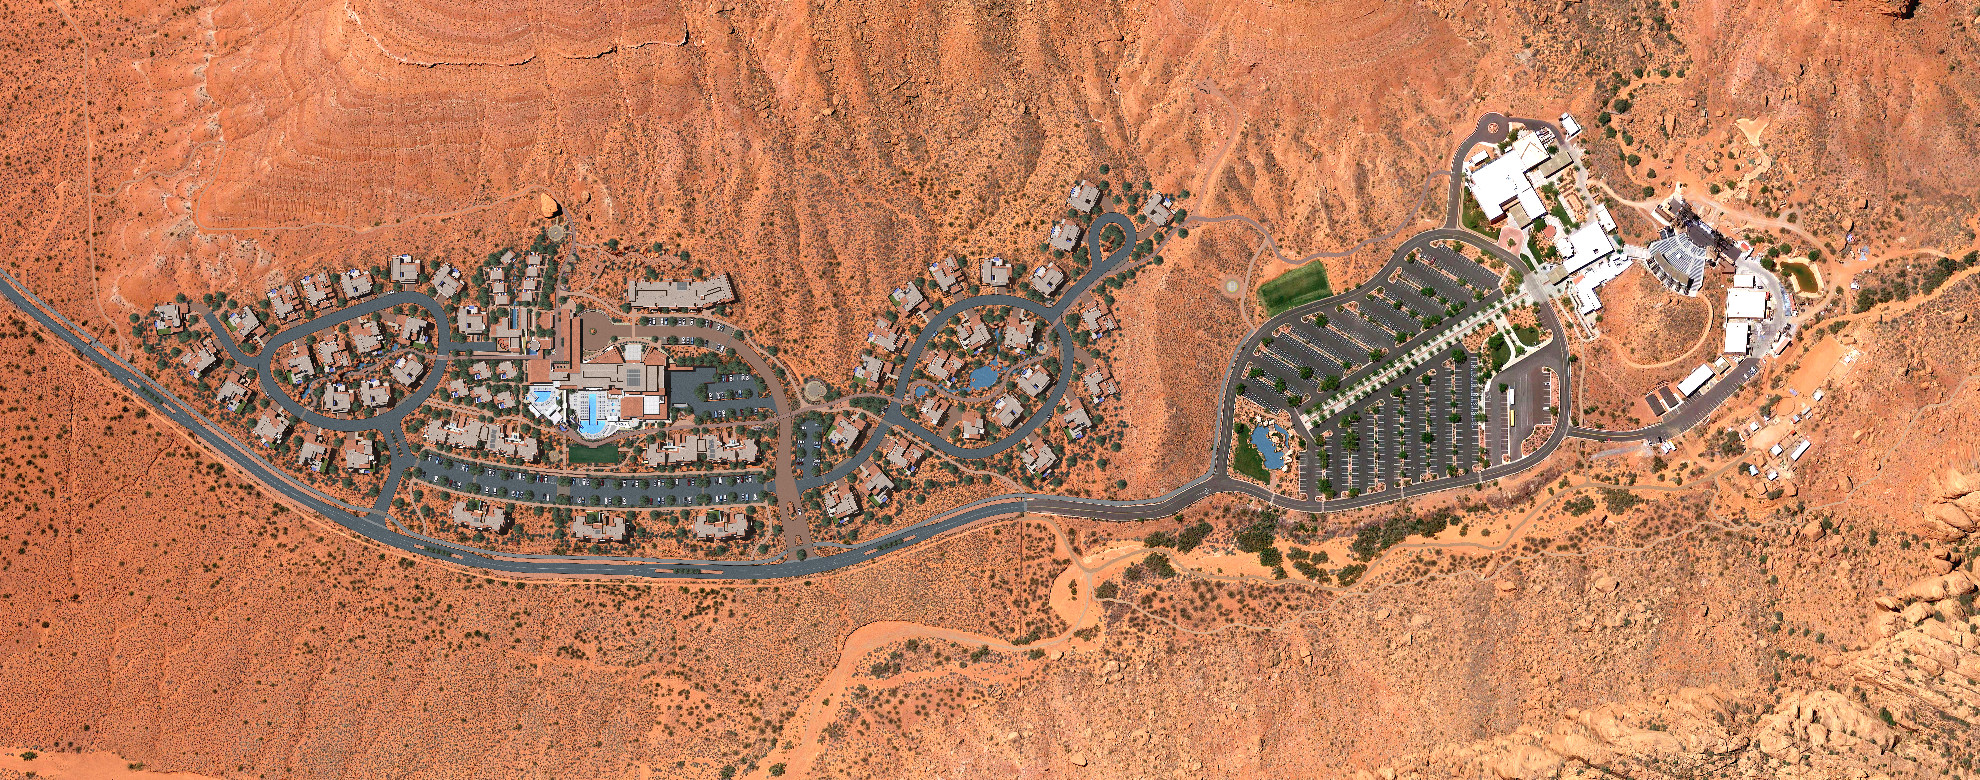 The proposed road privatization would run from Tuacahn to the end of the Sentierre development on Tuacahn Drive | Image courtesy of Sentierre Resort, St. George News